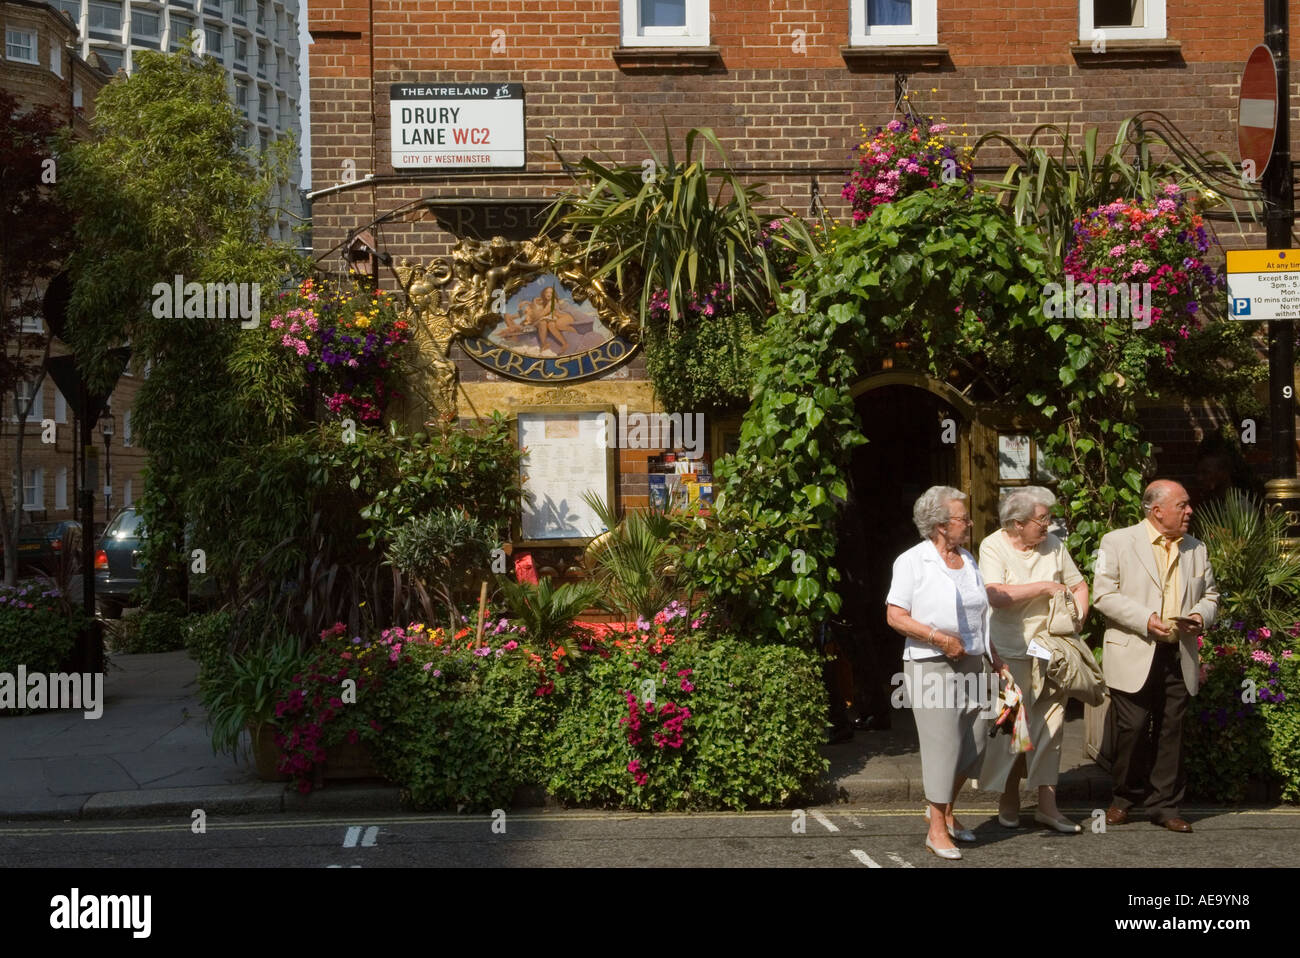 """Covent Garden""  west central London England Three older tourists leave a restaurant in ""Drury Lane"" WC2 Stock Photo"